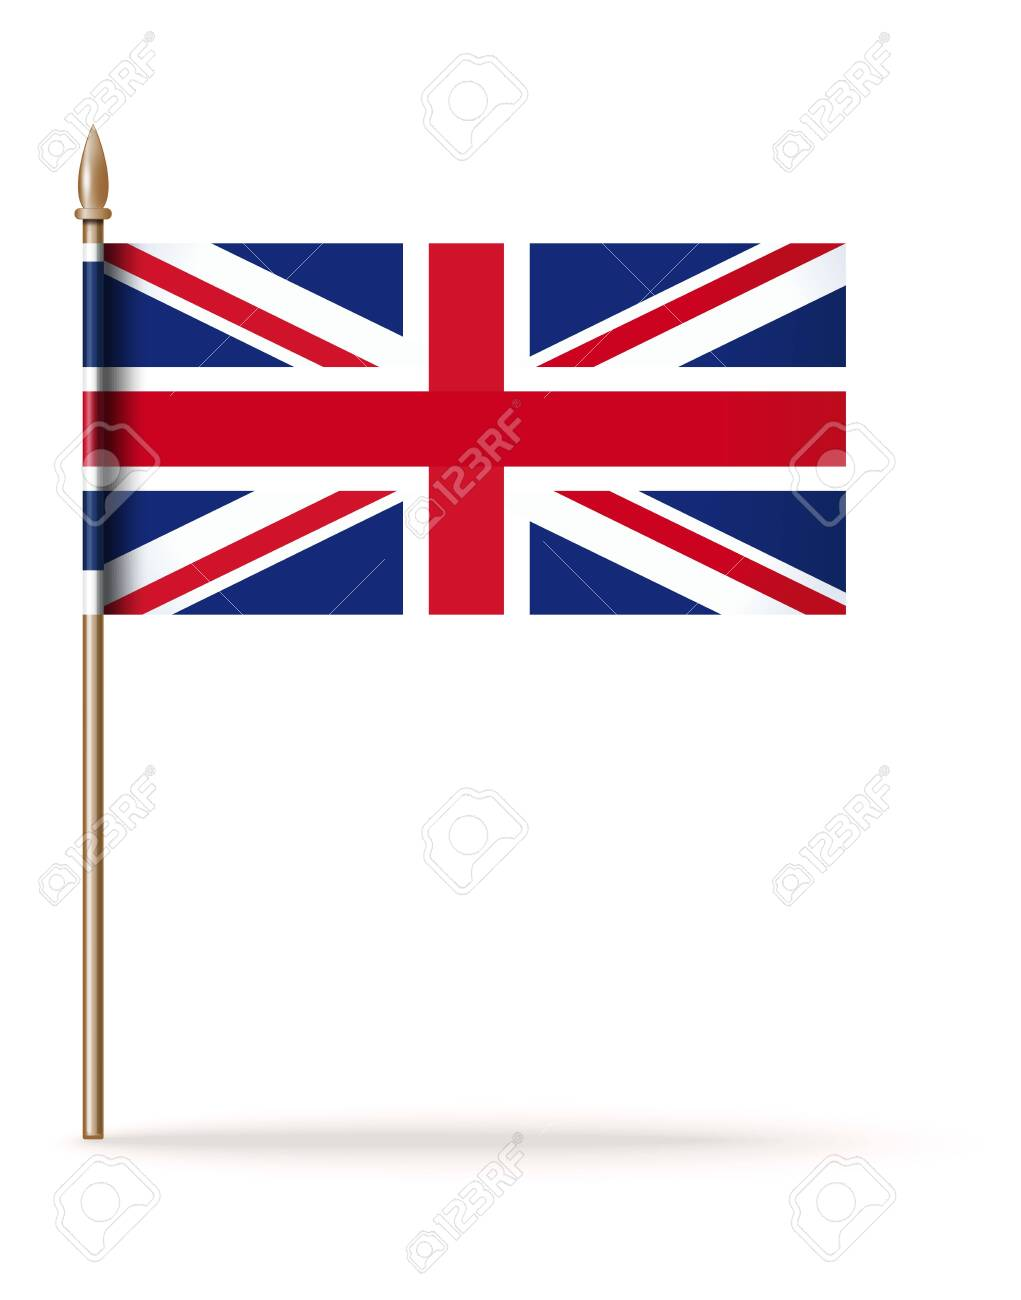 England Flag Vector : england, vector, British, Icon., Flag., Union, Jack., National, Great.., Royalty, Cliparts,, Vectors,, Stock, Illustration., Image, 144473720.